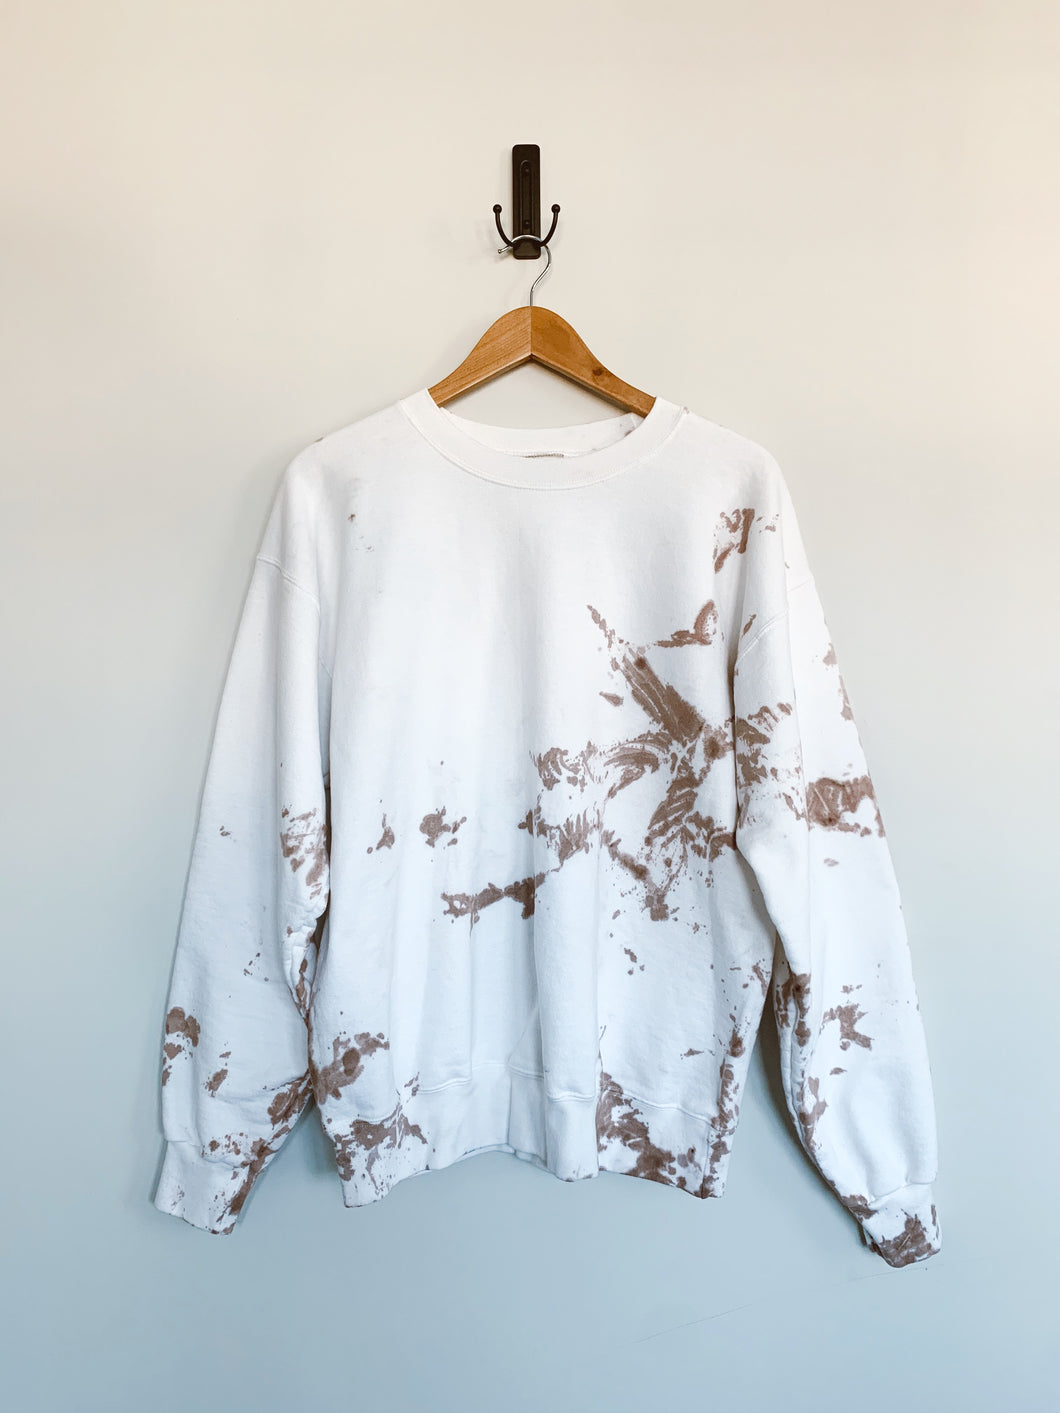 Chai Tea Latte Crewneck